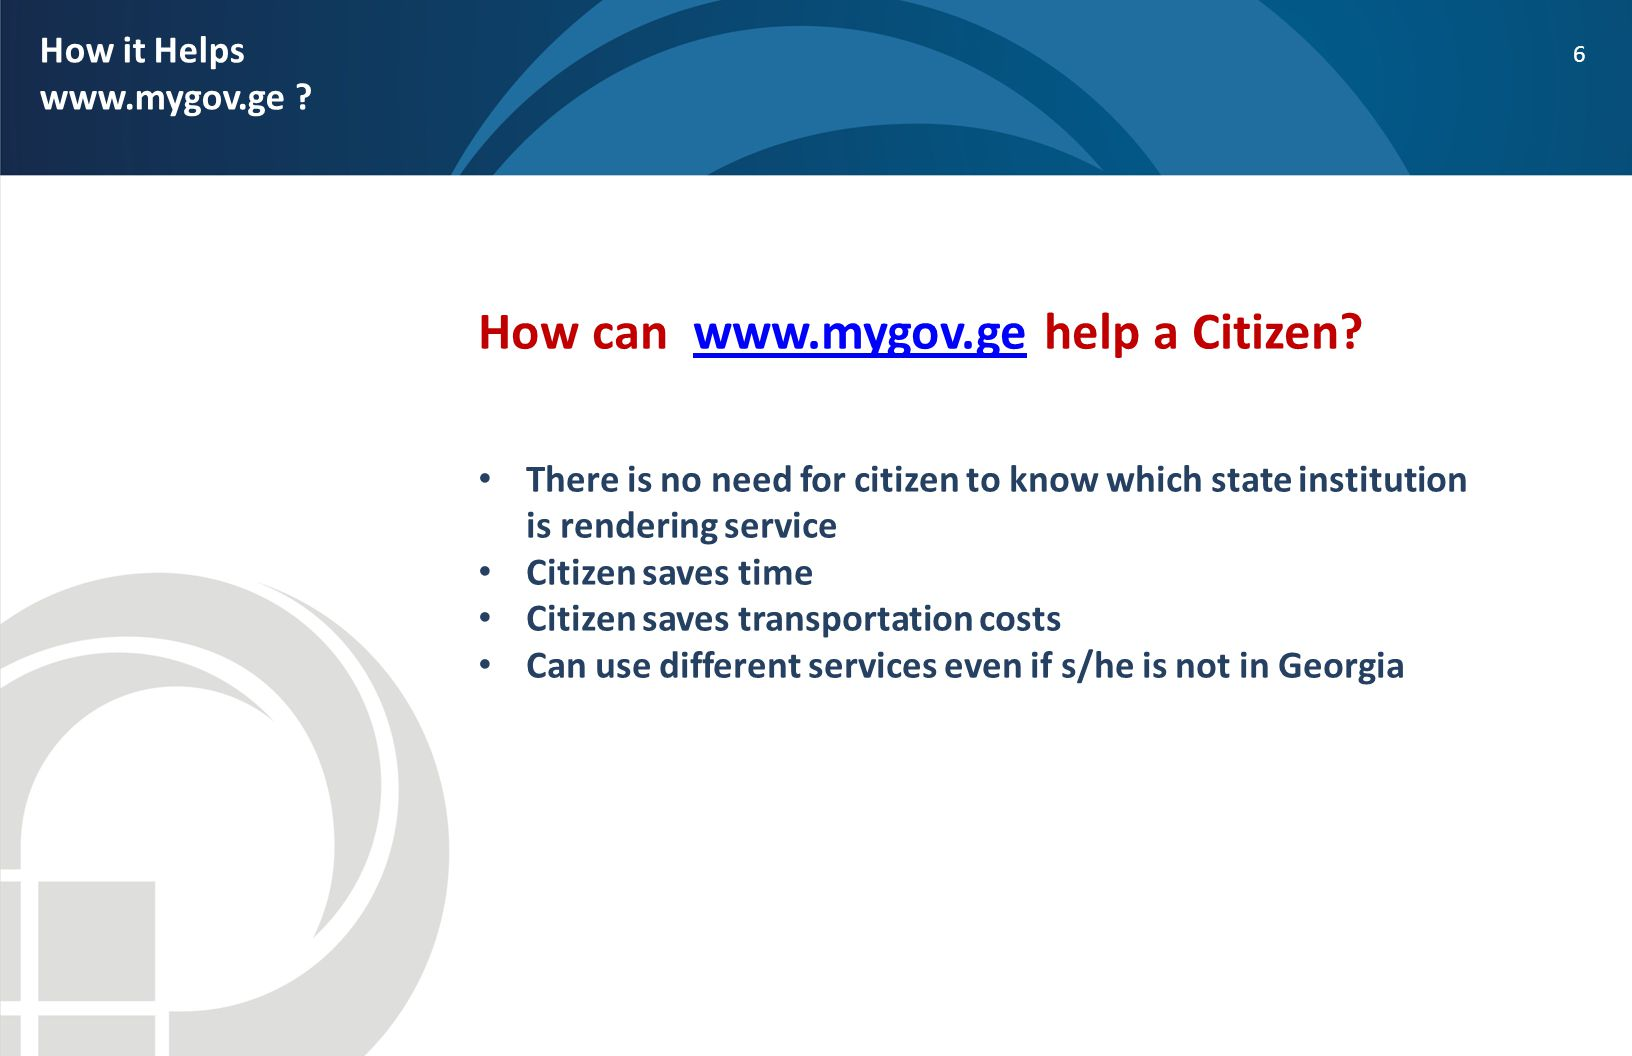 How can www.mygov.ge help a Citizen